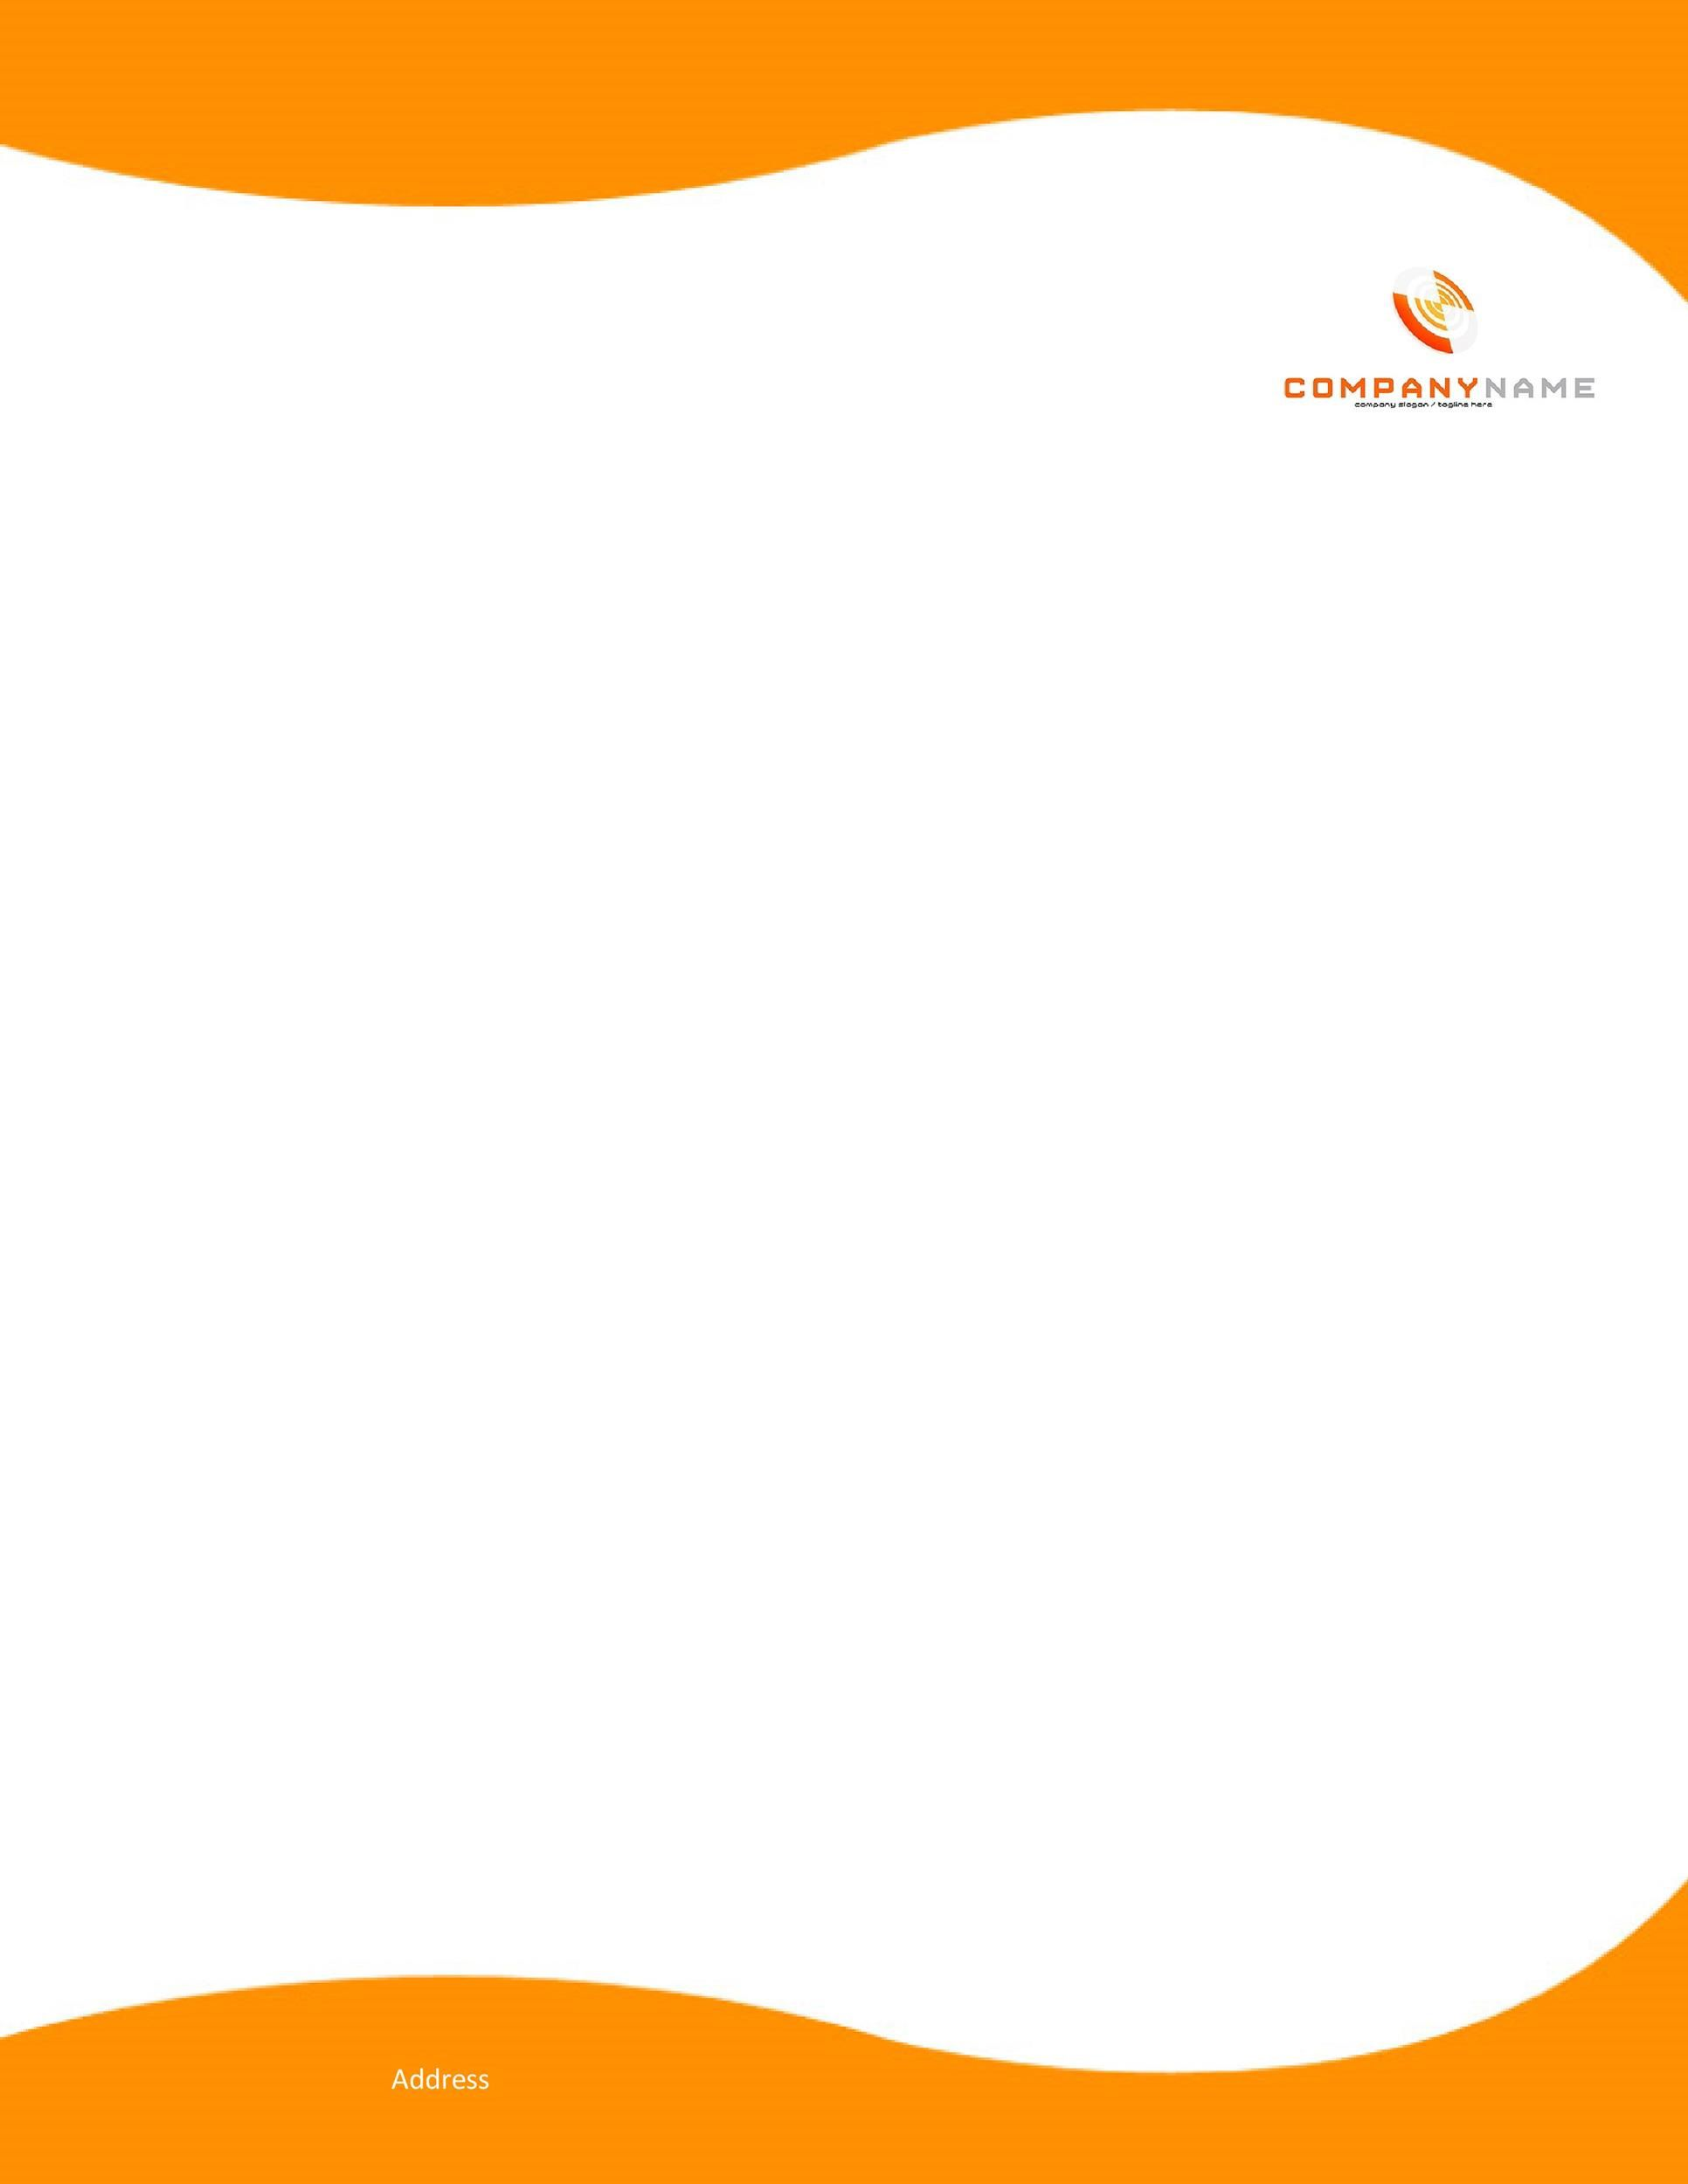 006 Unusual Letterhead Format Excel Free Download Picture Full